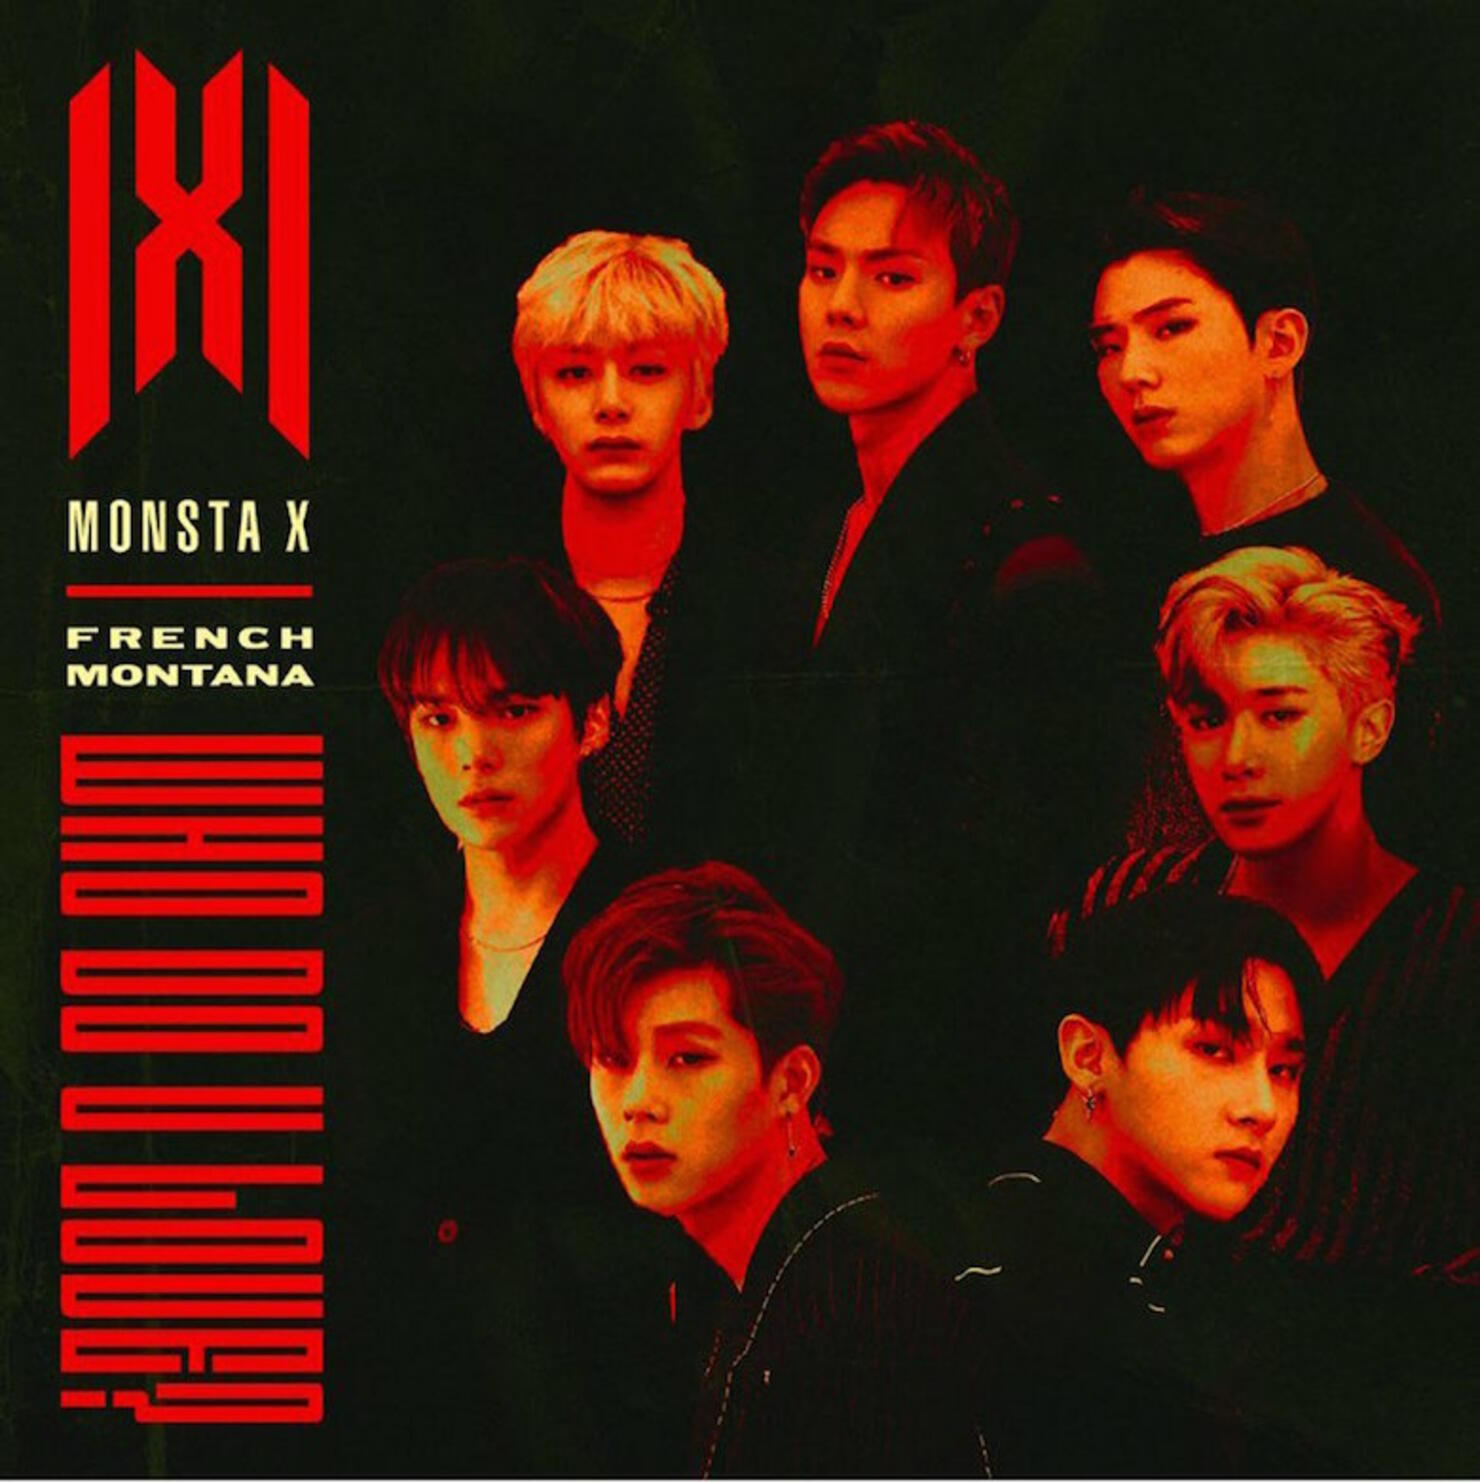 """MONSTA X & French Montana """"What Do You Love?"""" Single Cover Art"""